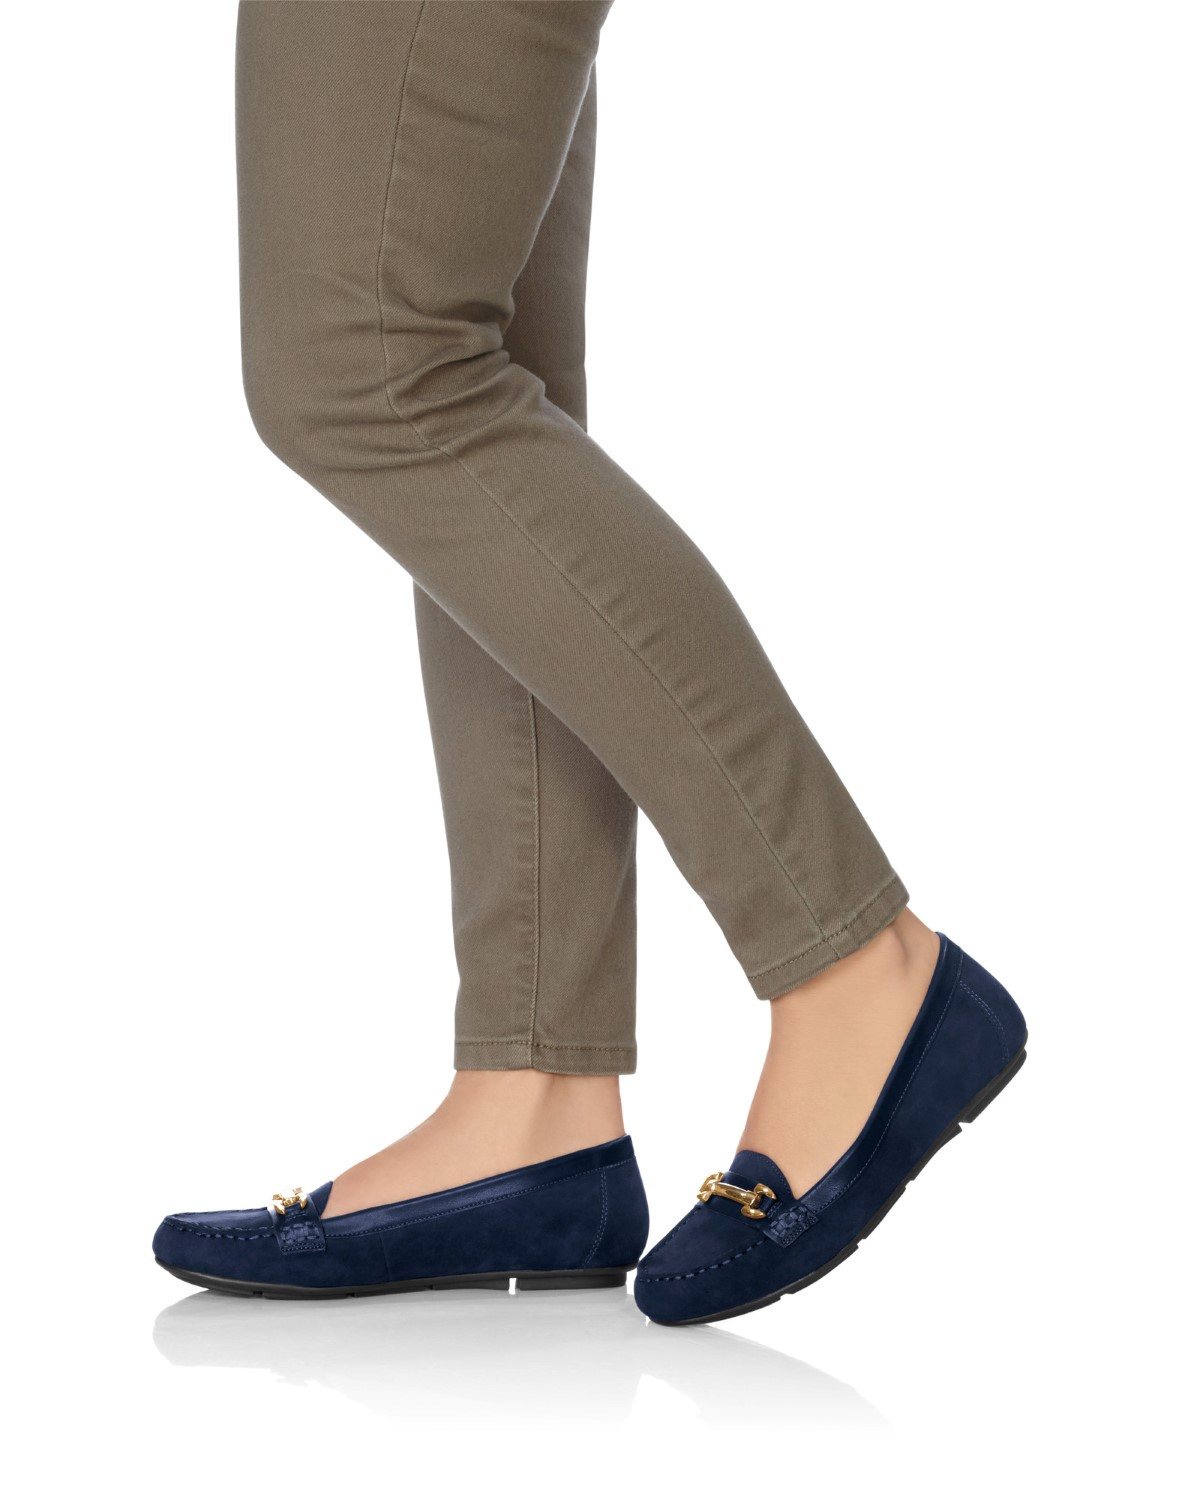 79015d08d22 Vionic Chill Kenya - Women s Supportive Loafers - Free Shipping ...